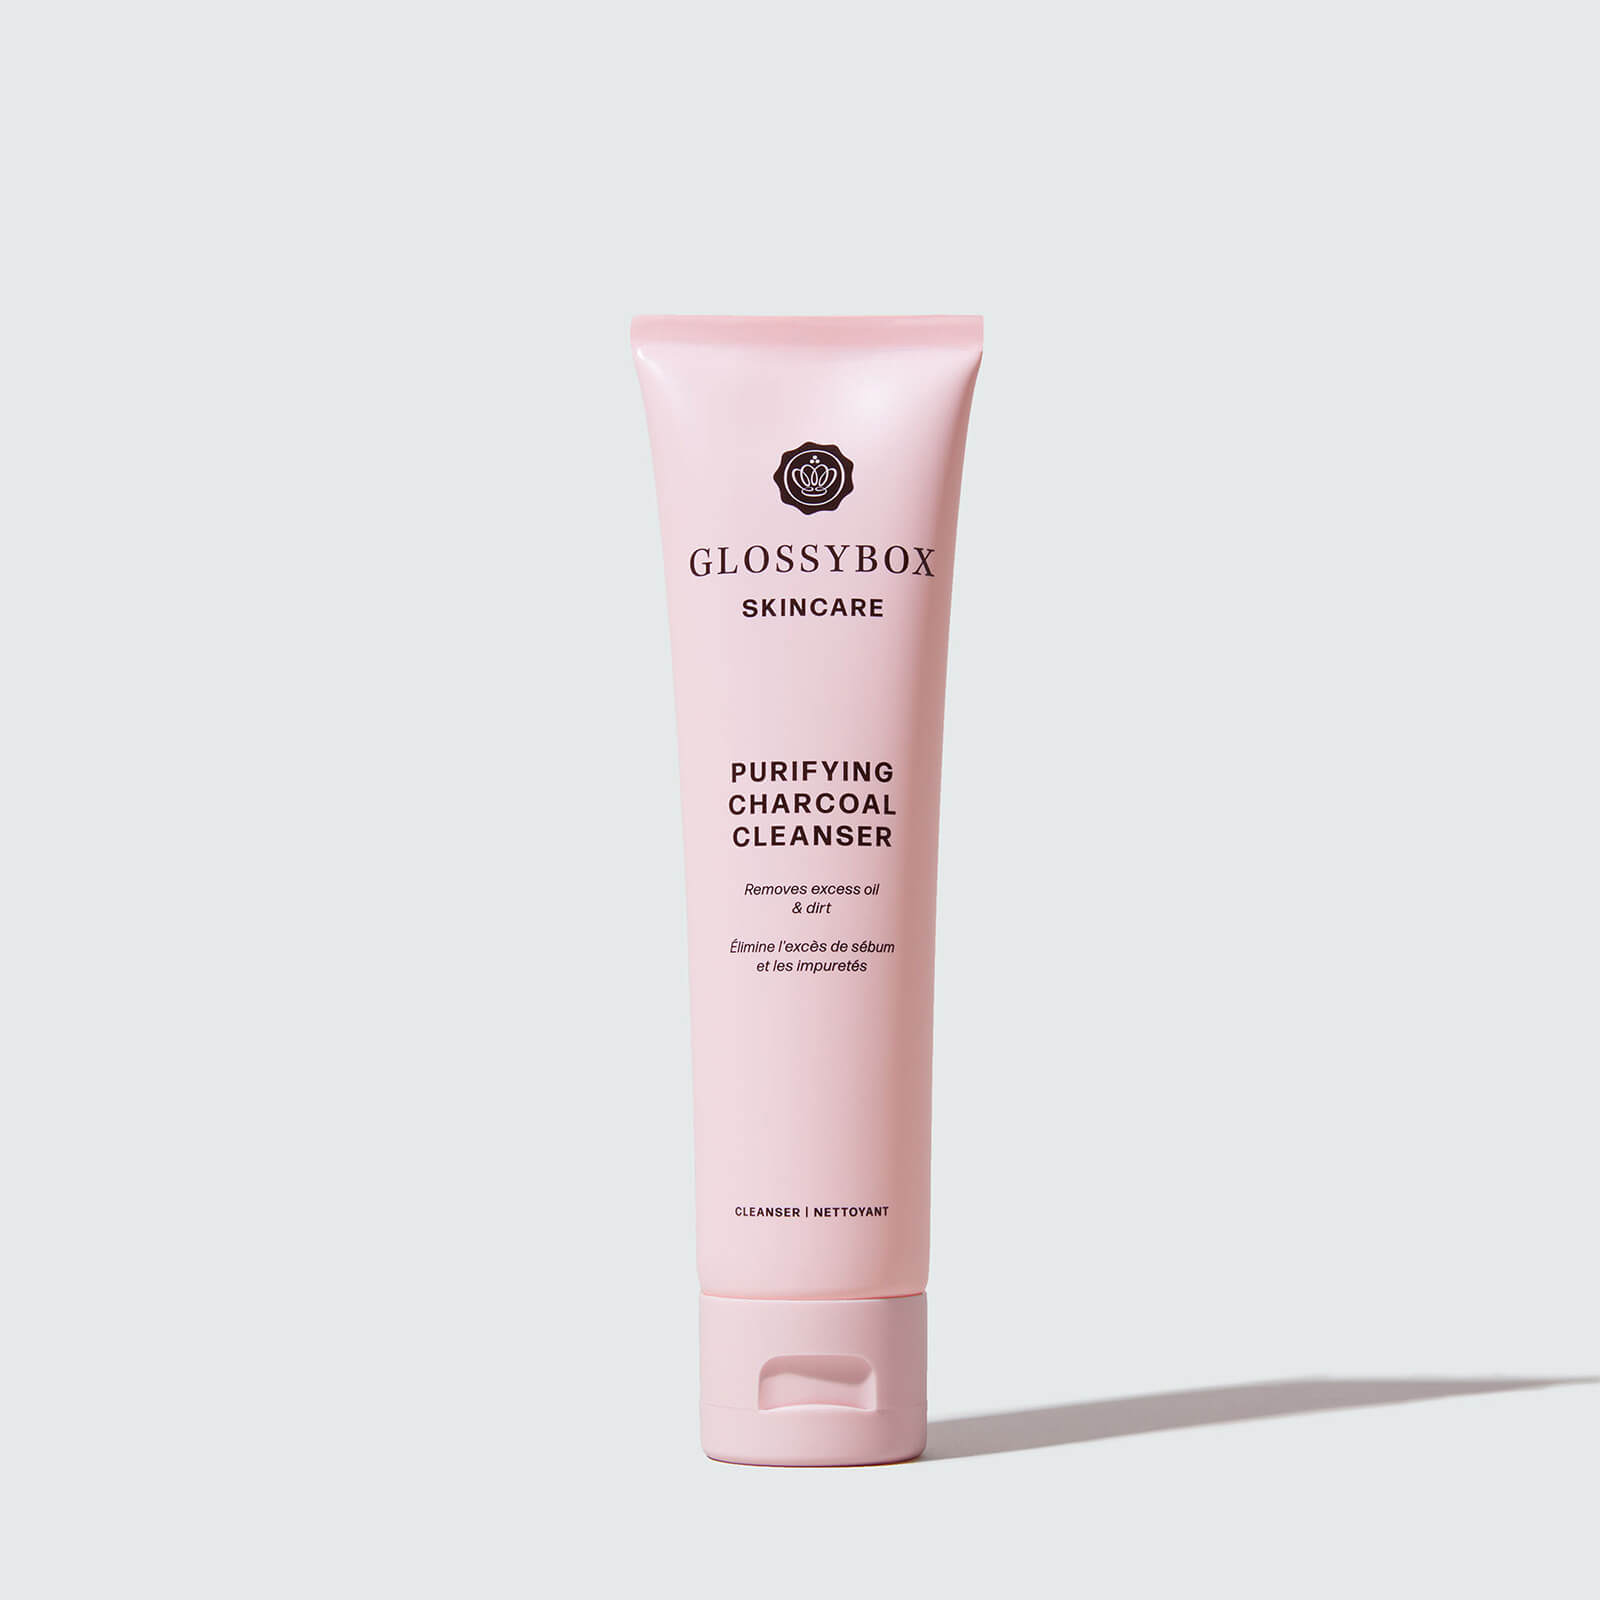 Glossy Box coupon: GLOSSYBOX Purifying Charcoal Cleanser 100ml